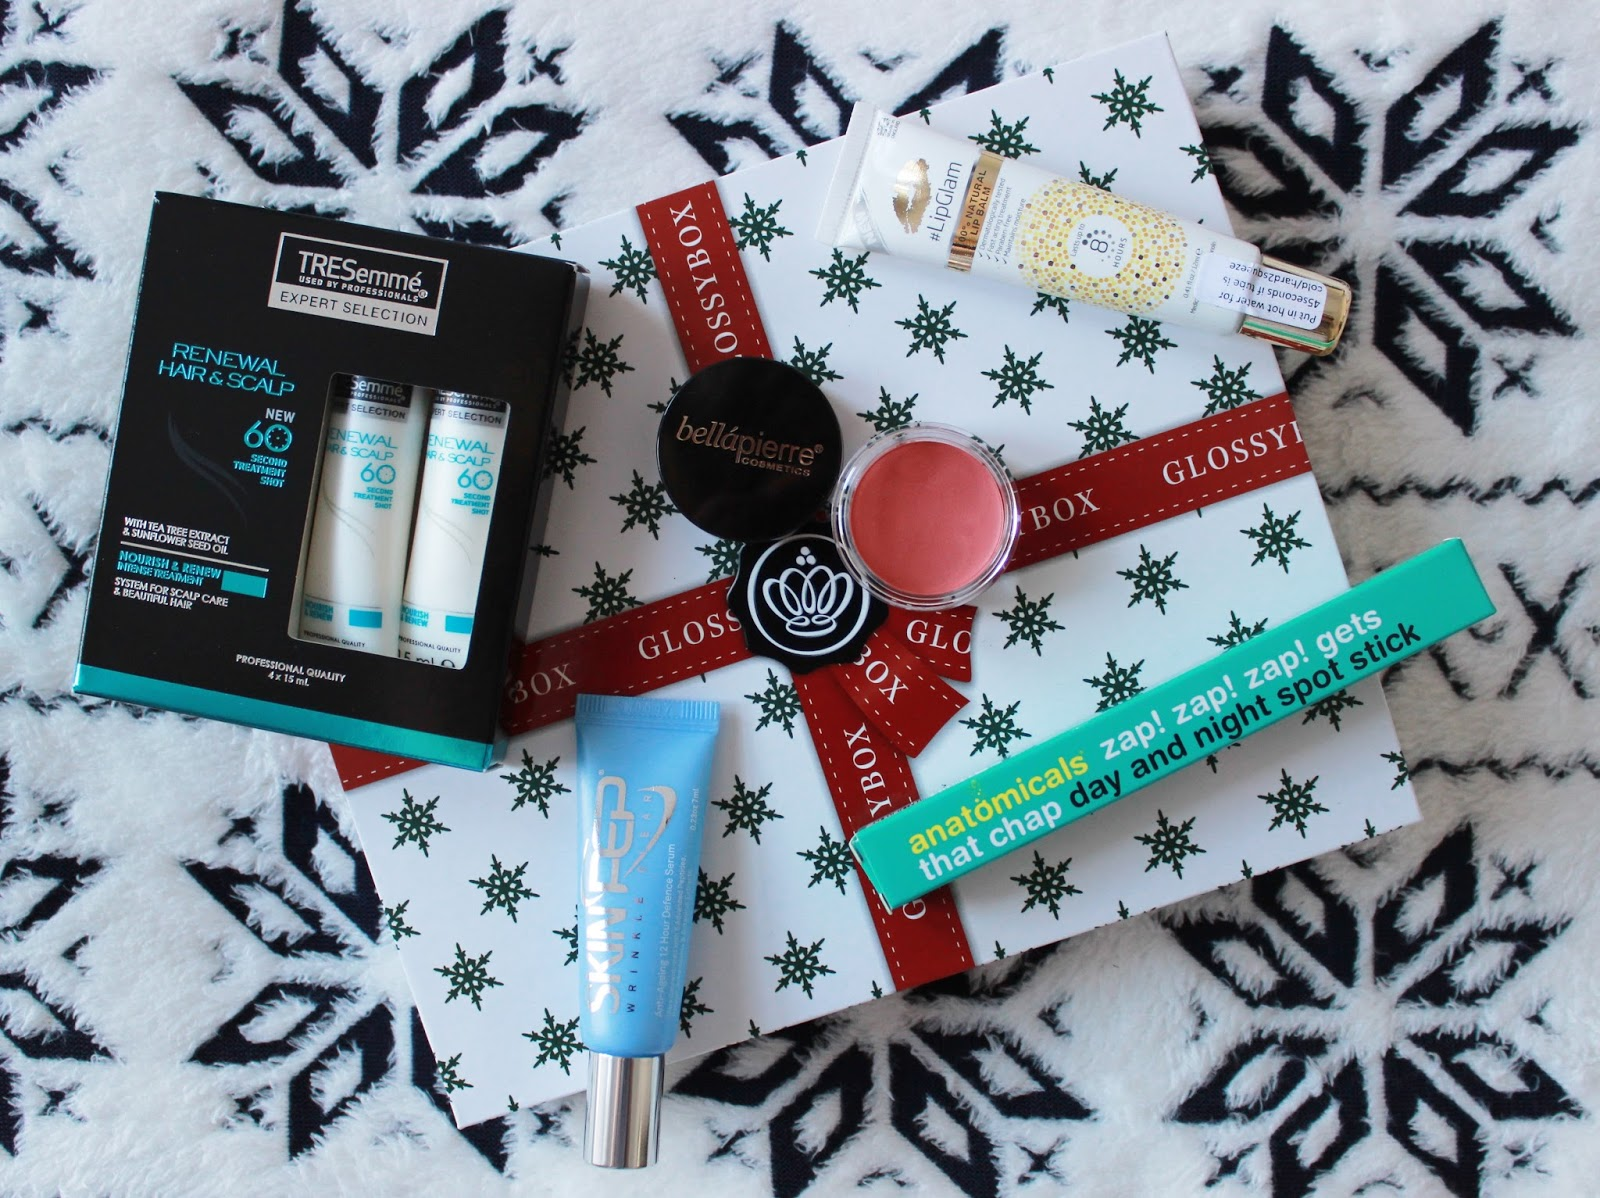 Glossybox December 2014 box contents